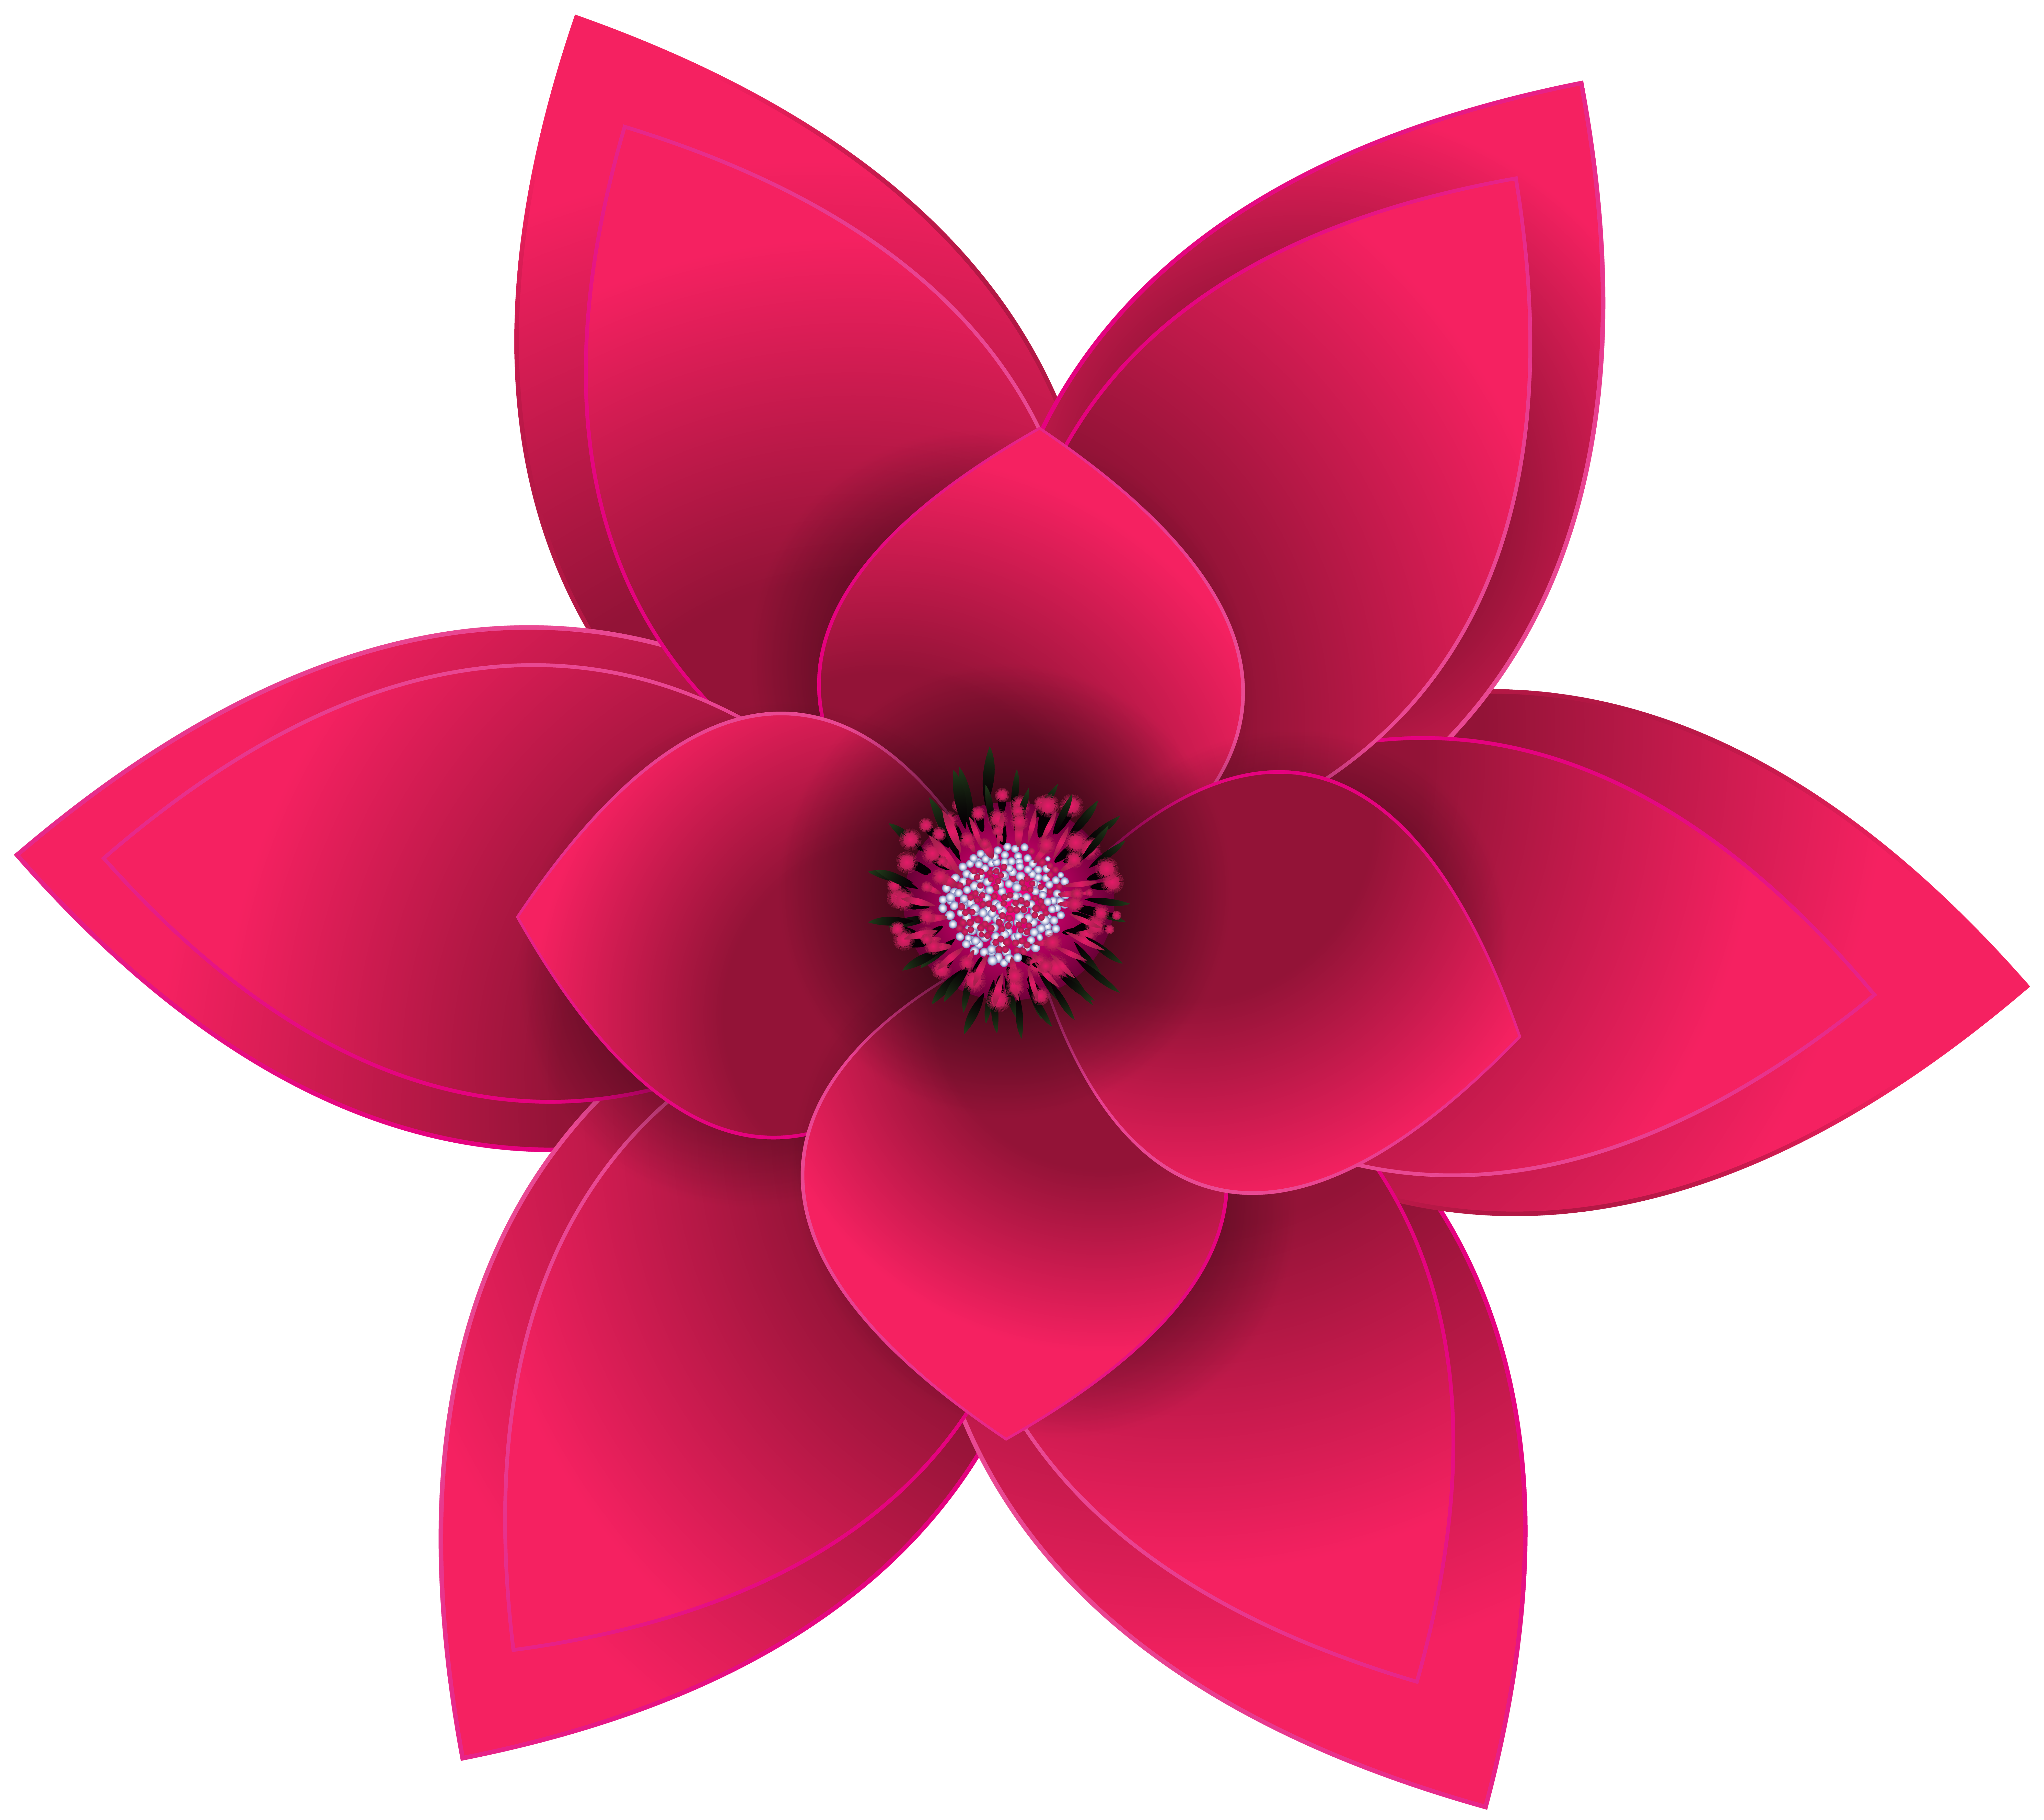 Lotus clipart at getdrawings free for personal use lotus 8000x7123 decorative flower transparent clip art imageu200b gallery izmirmasajfo